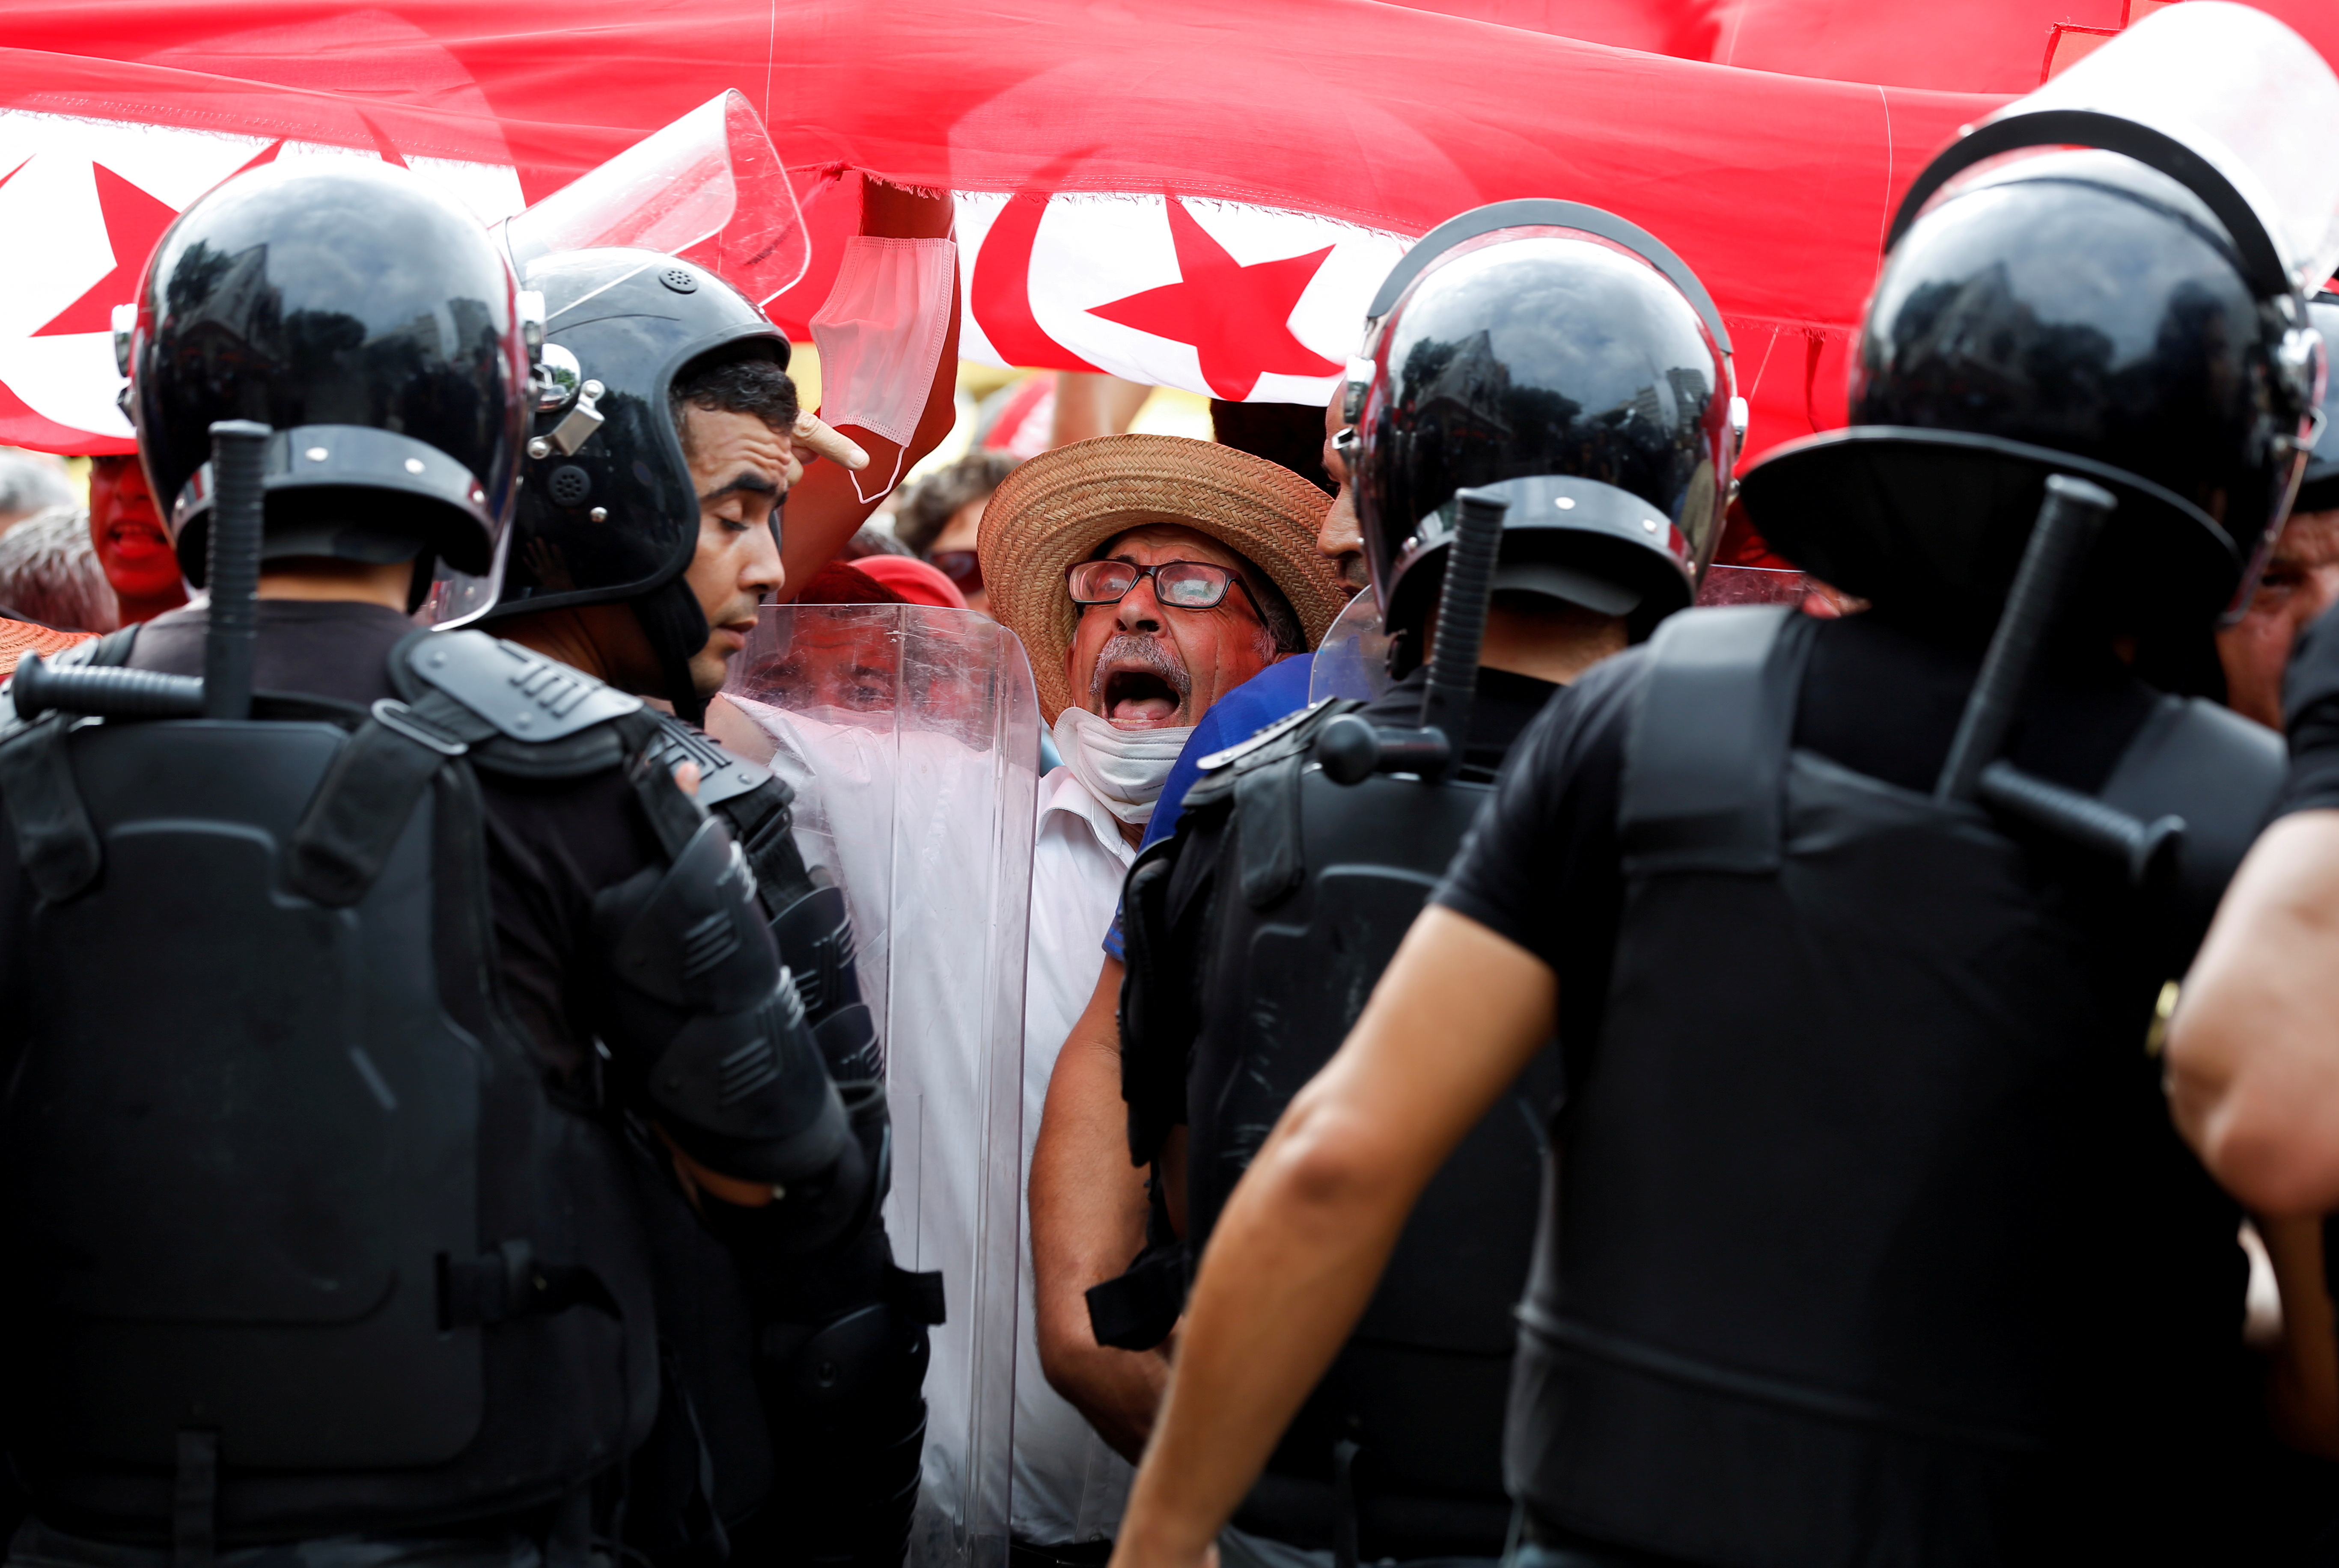 A demonstrator shouts slogans near police officers standing guard during a protest against Tunisian President Kais Saied's seizure of governing powers, in Tunis, Tunisia, September 26, 2021. REUTERS/Zoubeir Souissi